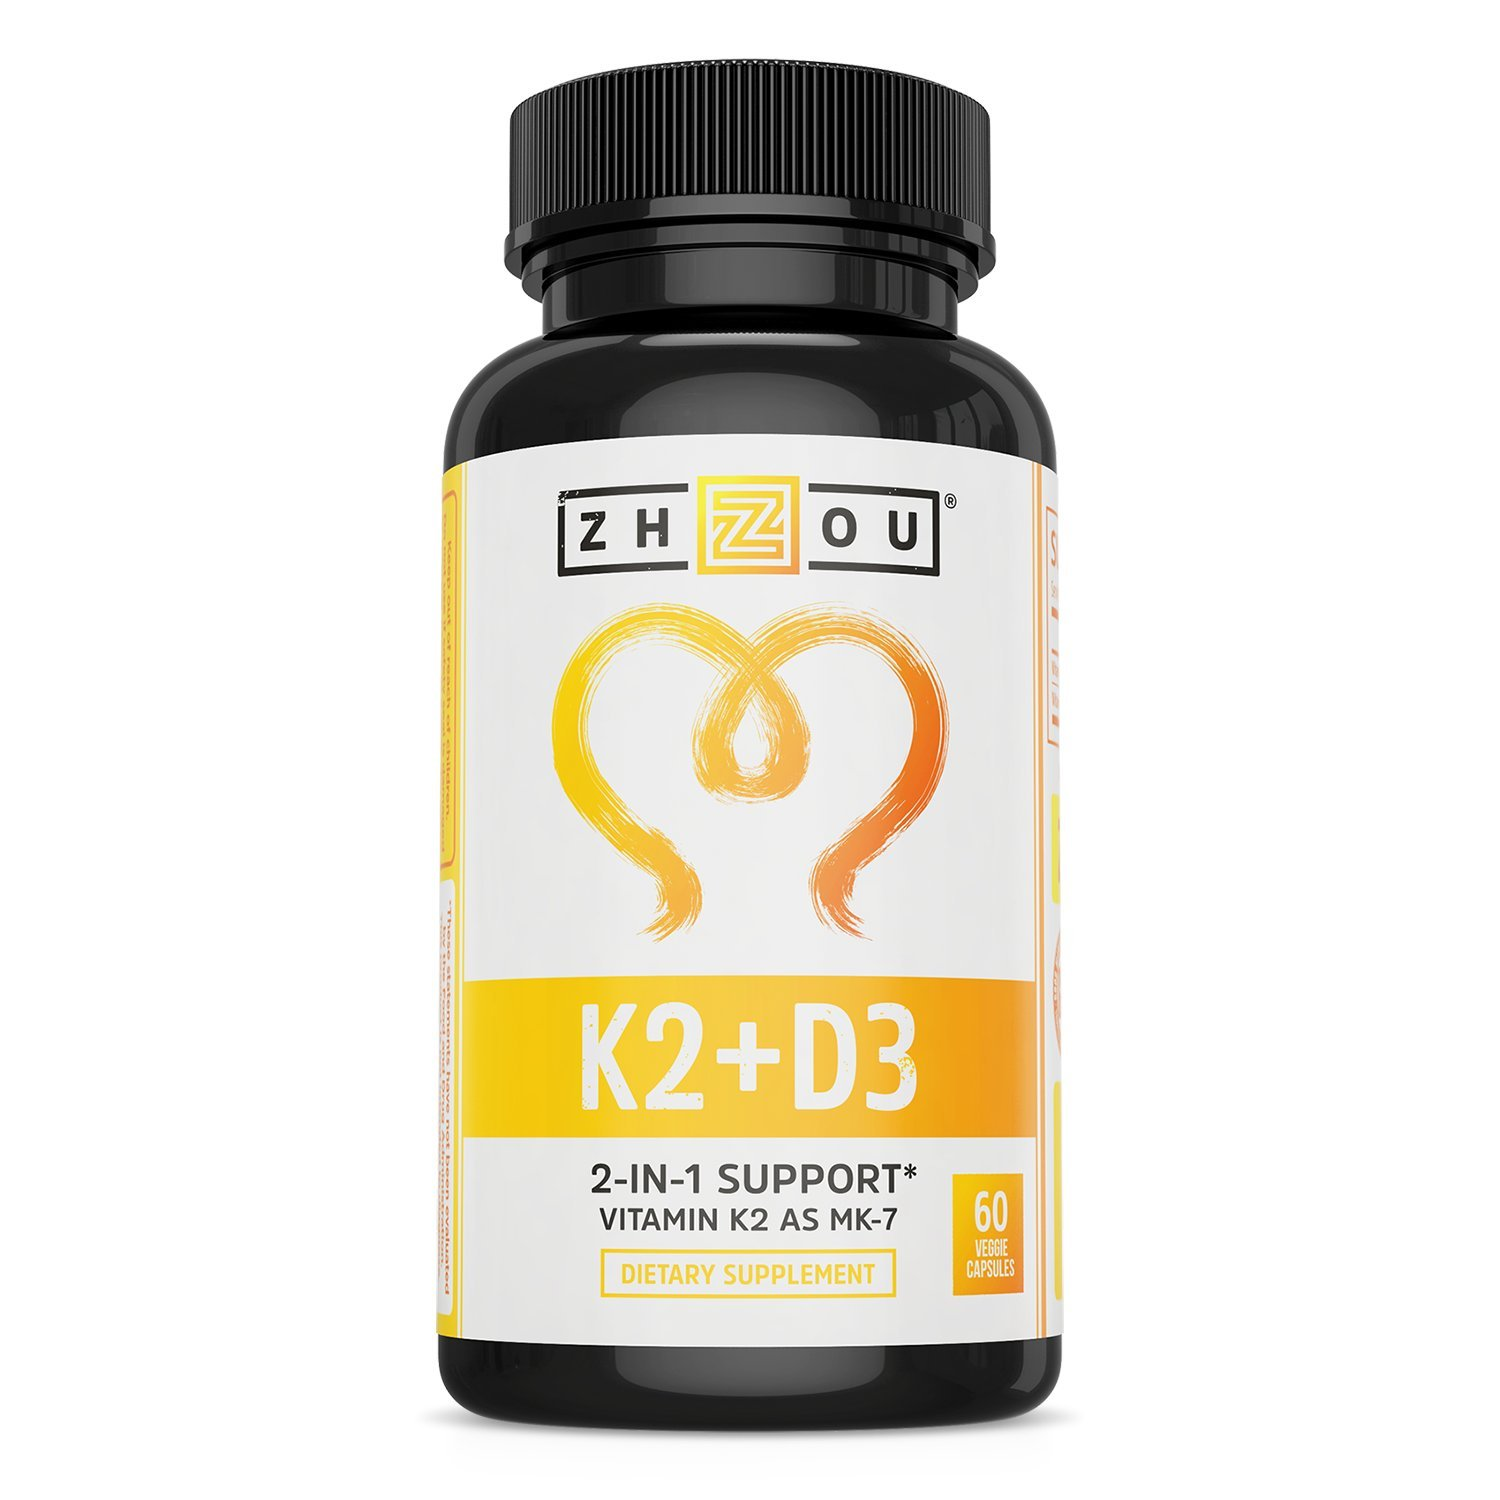 Vitamin K2 (MK7) with D3 Supplement - Vitamin D & K Complex - Bone and Heart Health Formula - 5000 IU Vitamin D3 & 90 mcg Vitamin K2 MK-7 - 60 Small & Easy to Swallow Vegetable Capsules by Zhou Nutrition